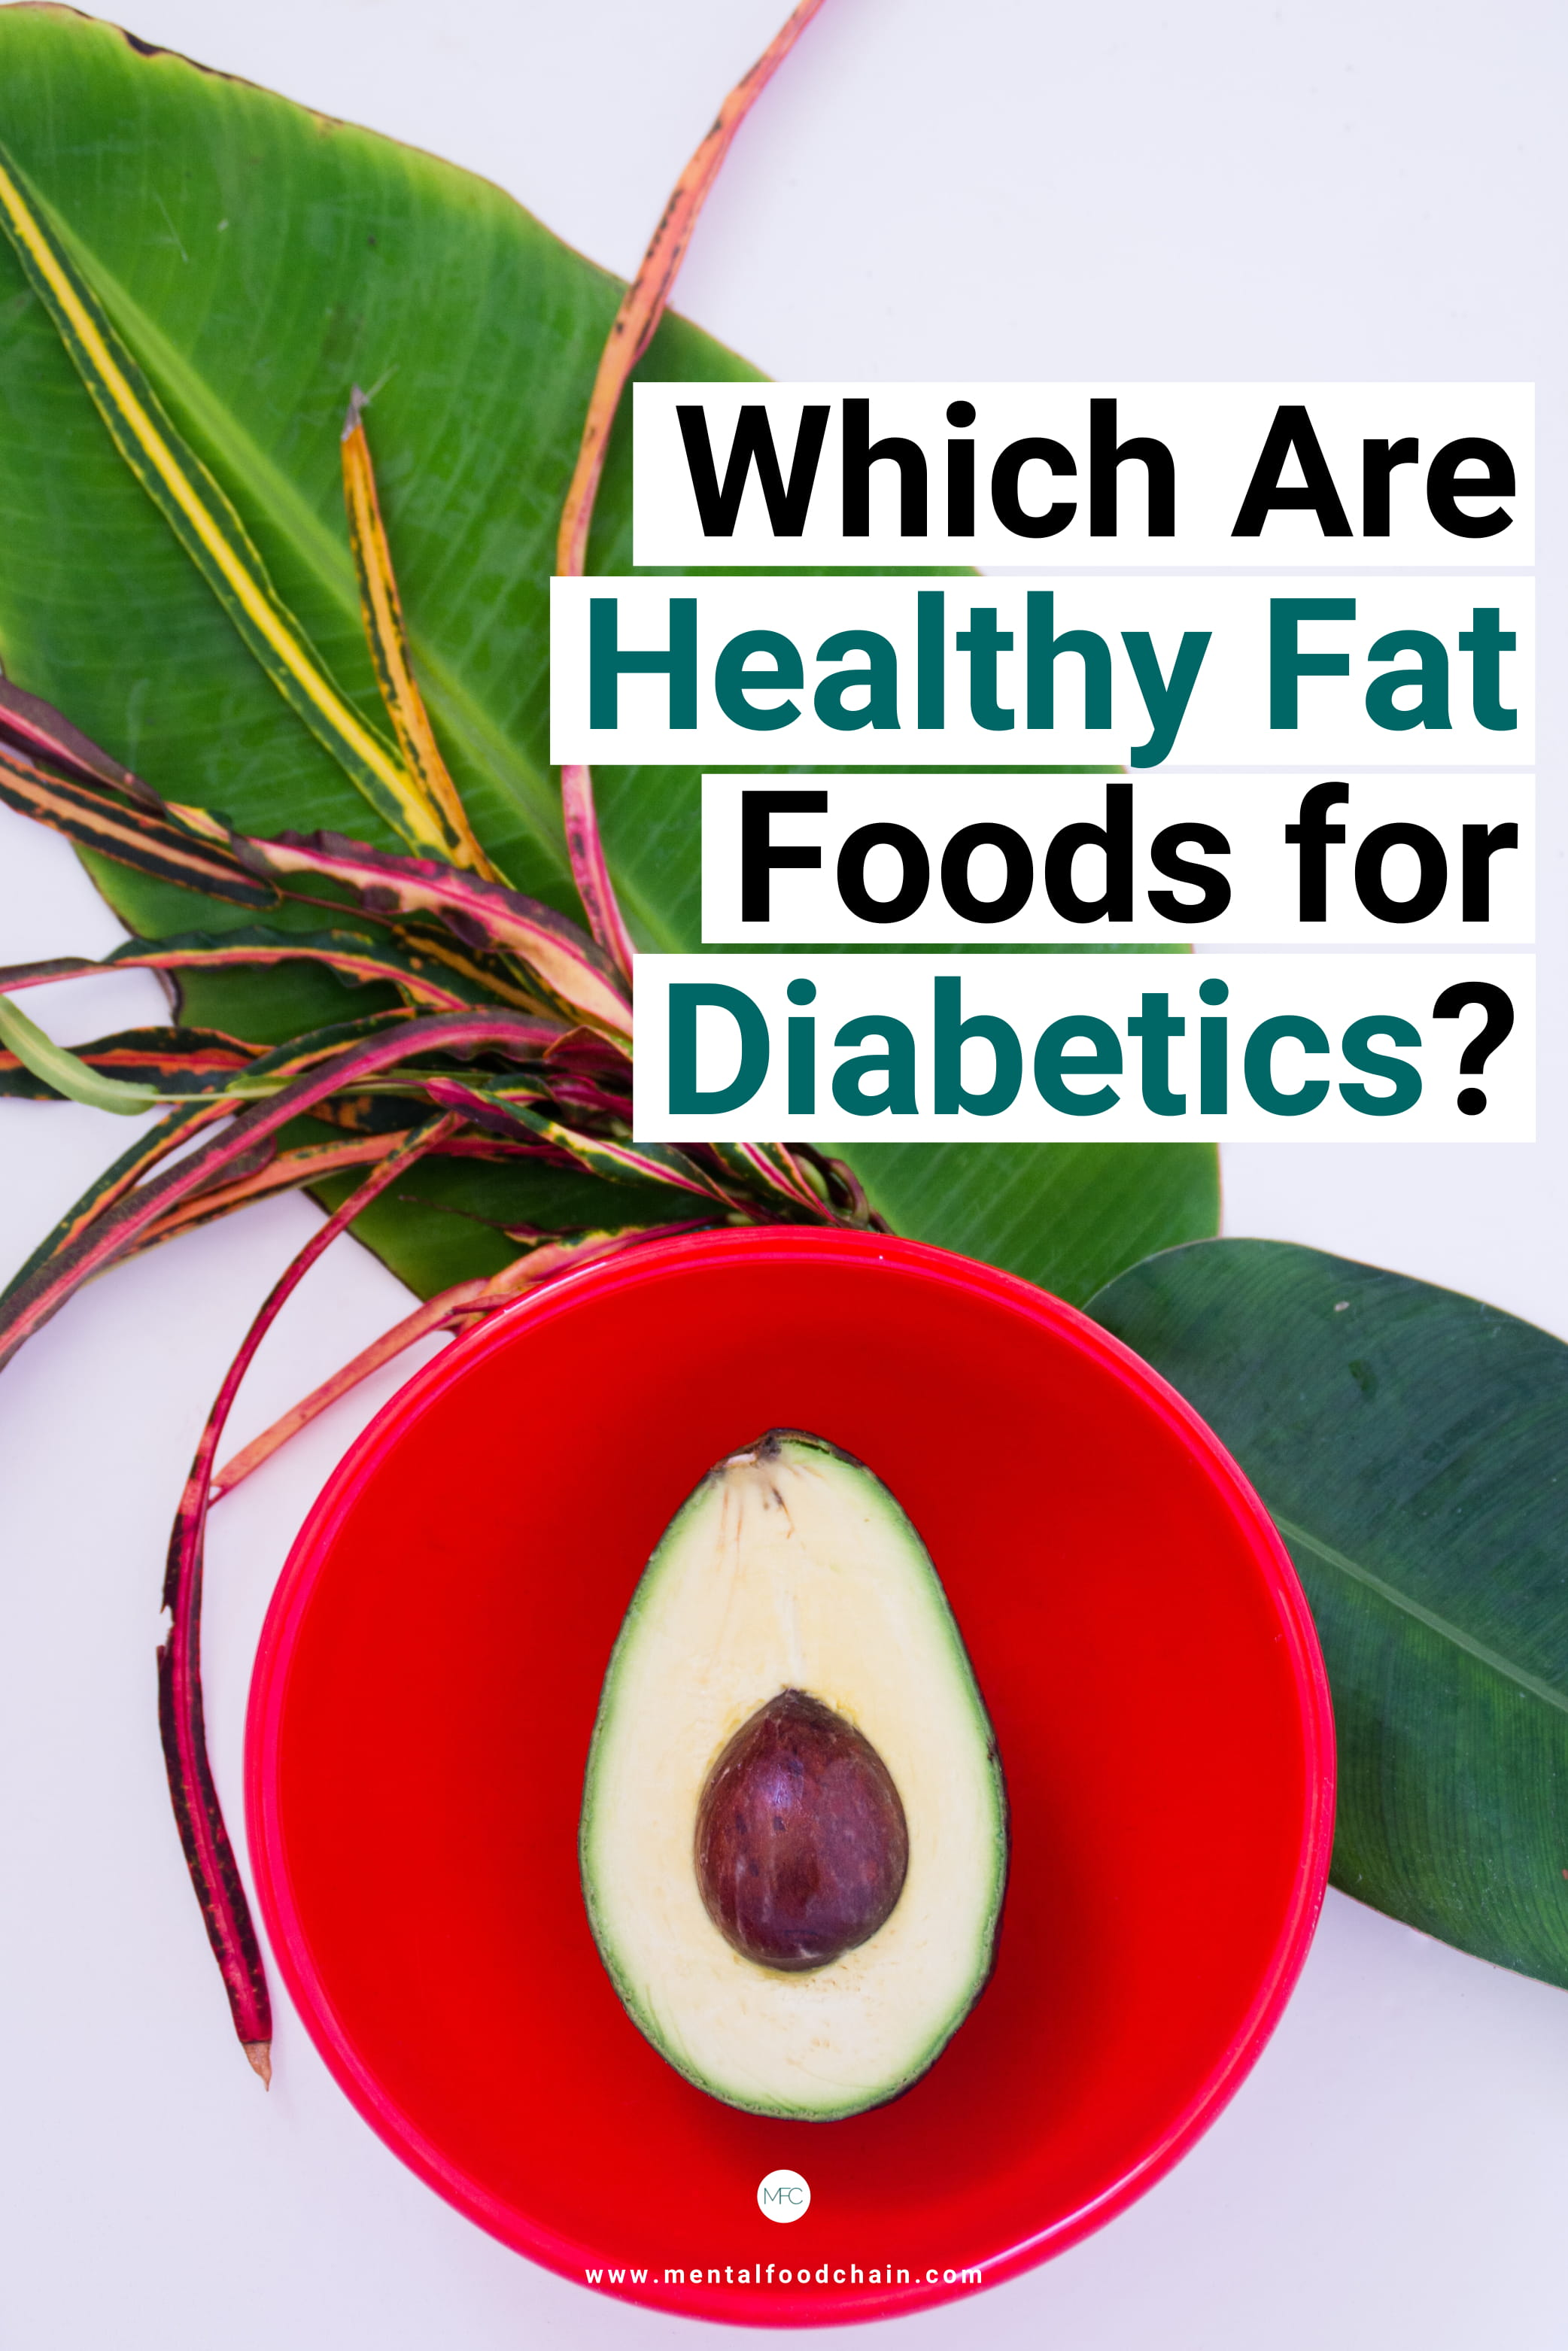 Foods with healthy fats can increase insulin sensitivity and diabetes